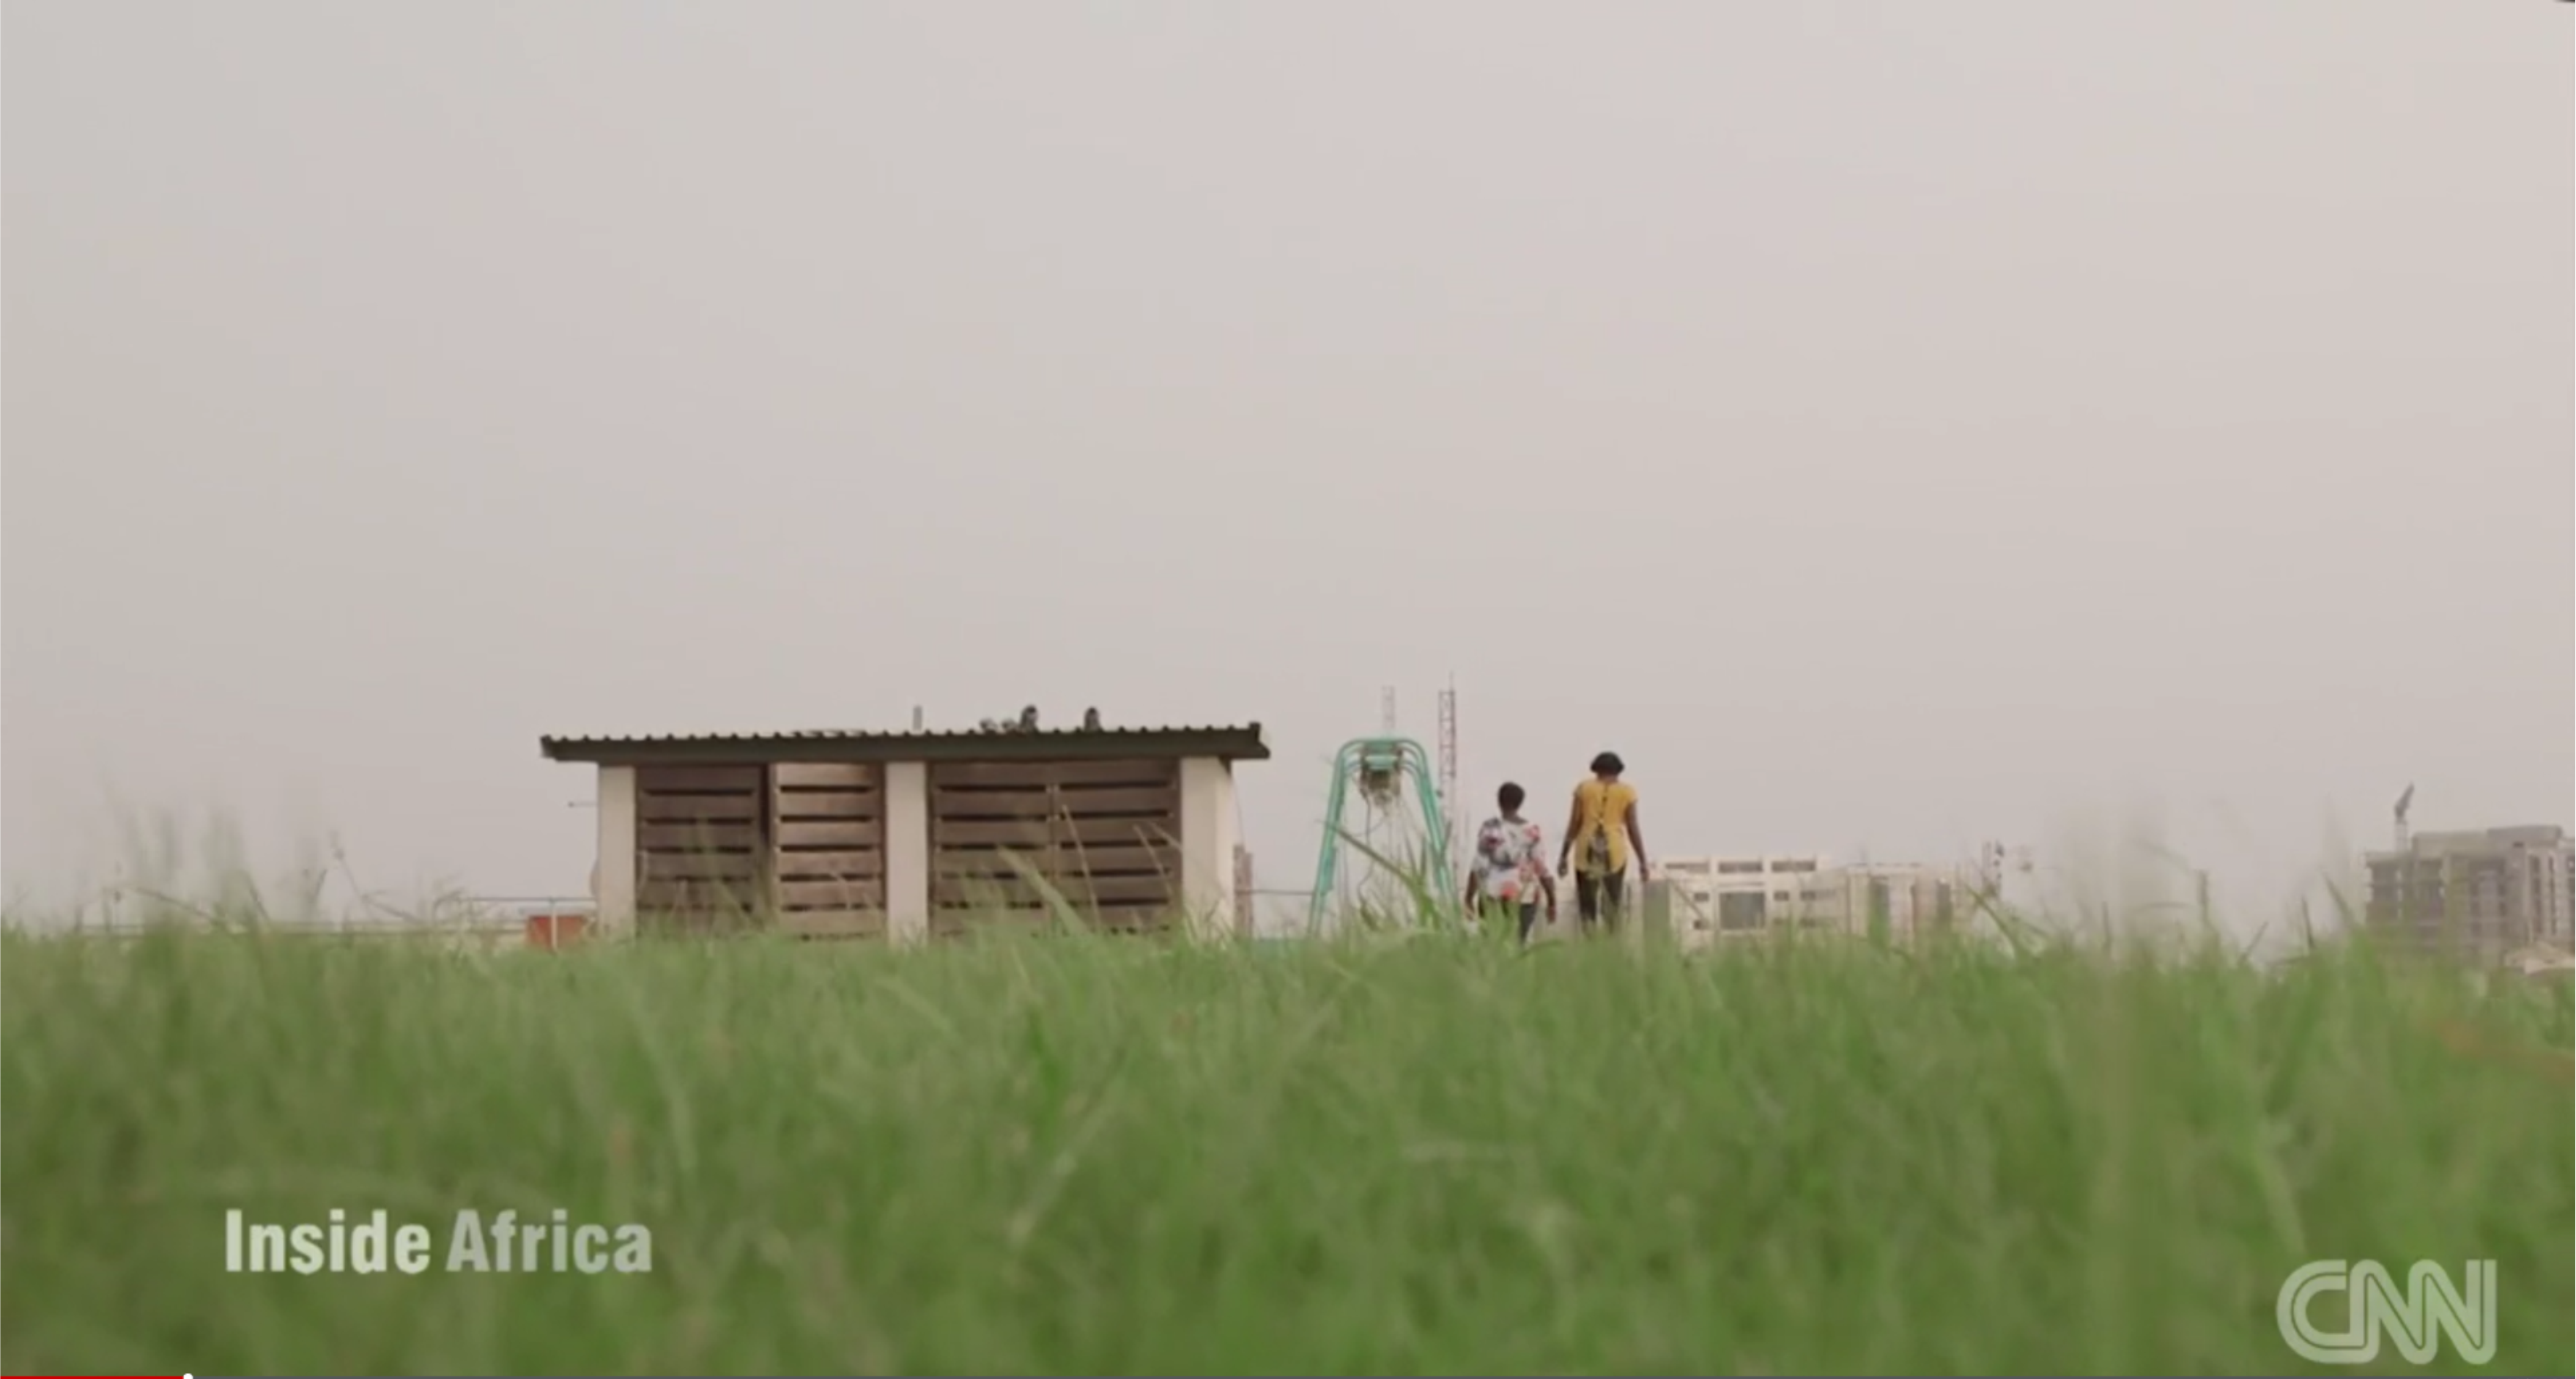 inside-africa-world-bank-ghana-green-roof